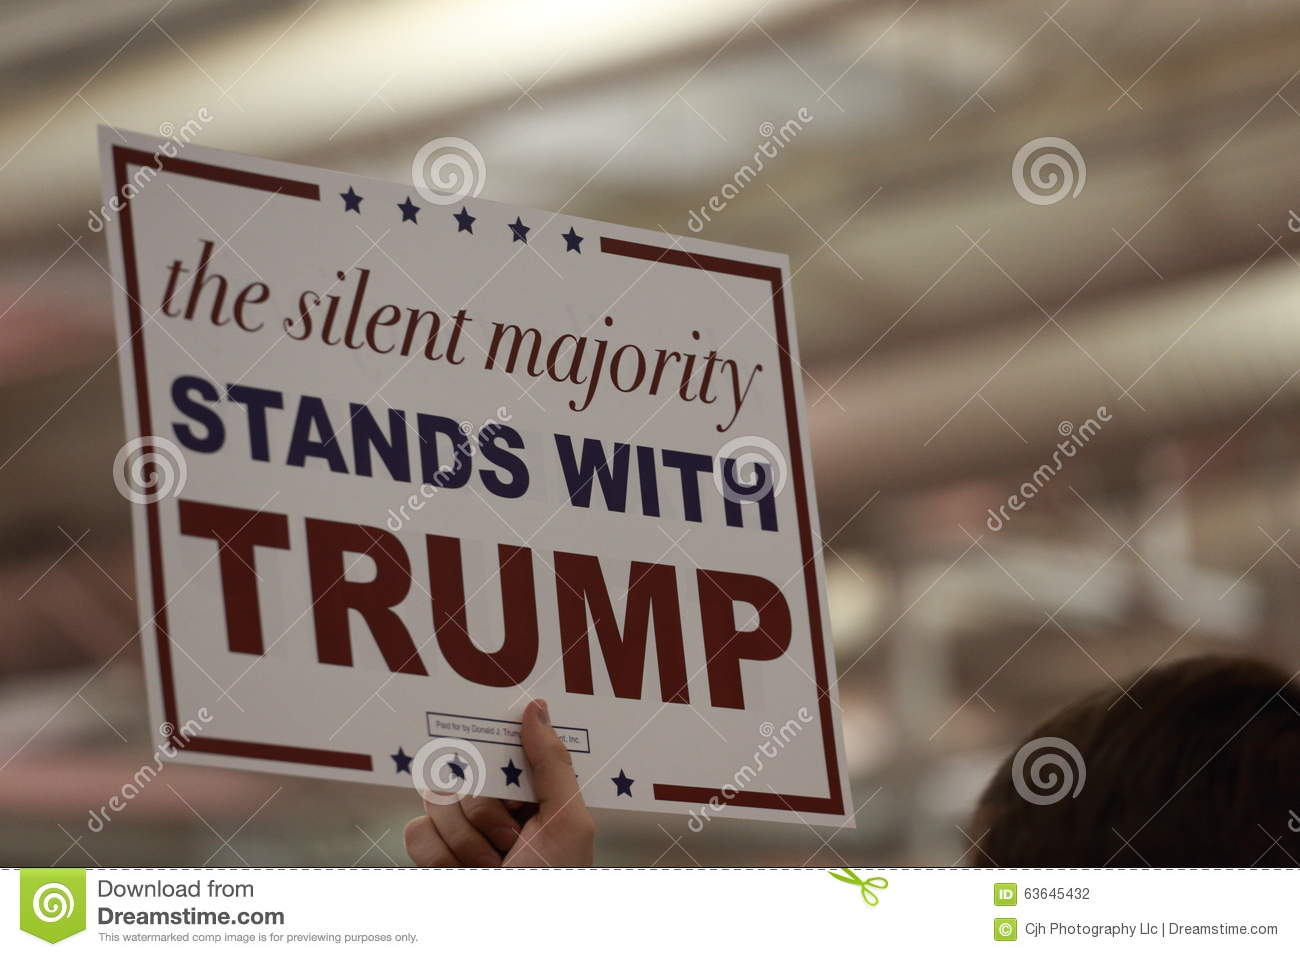 The Silent Majority stands with Trump sign